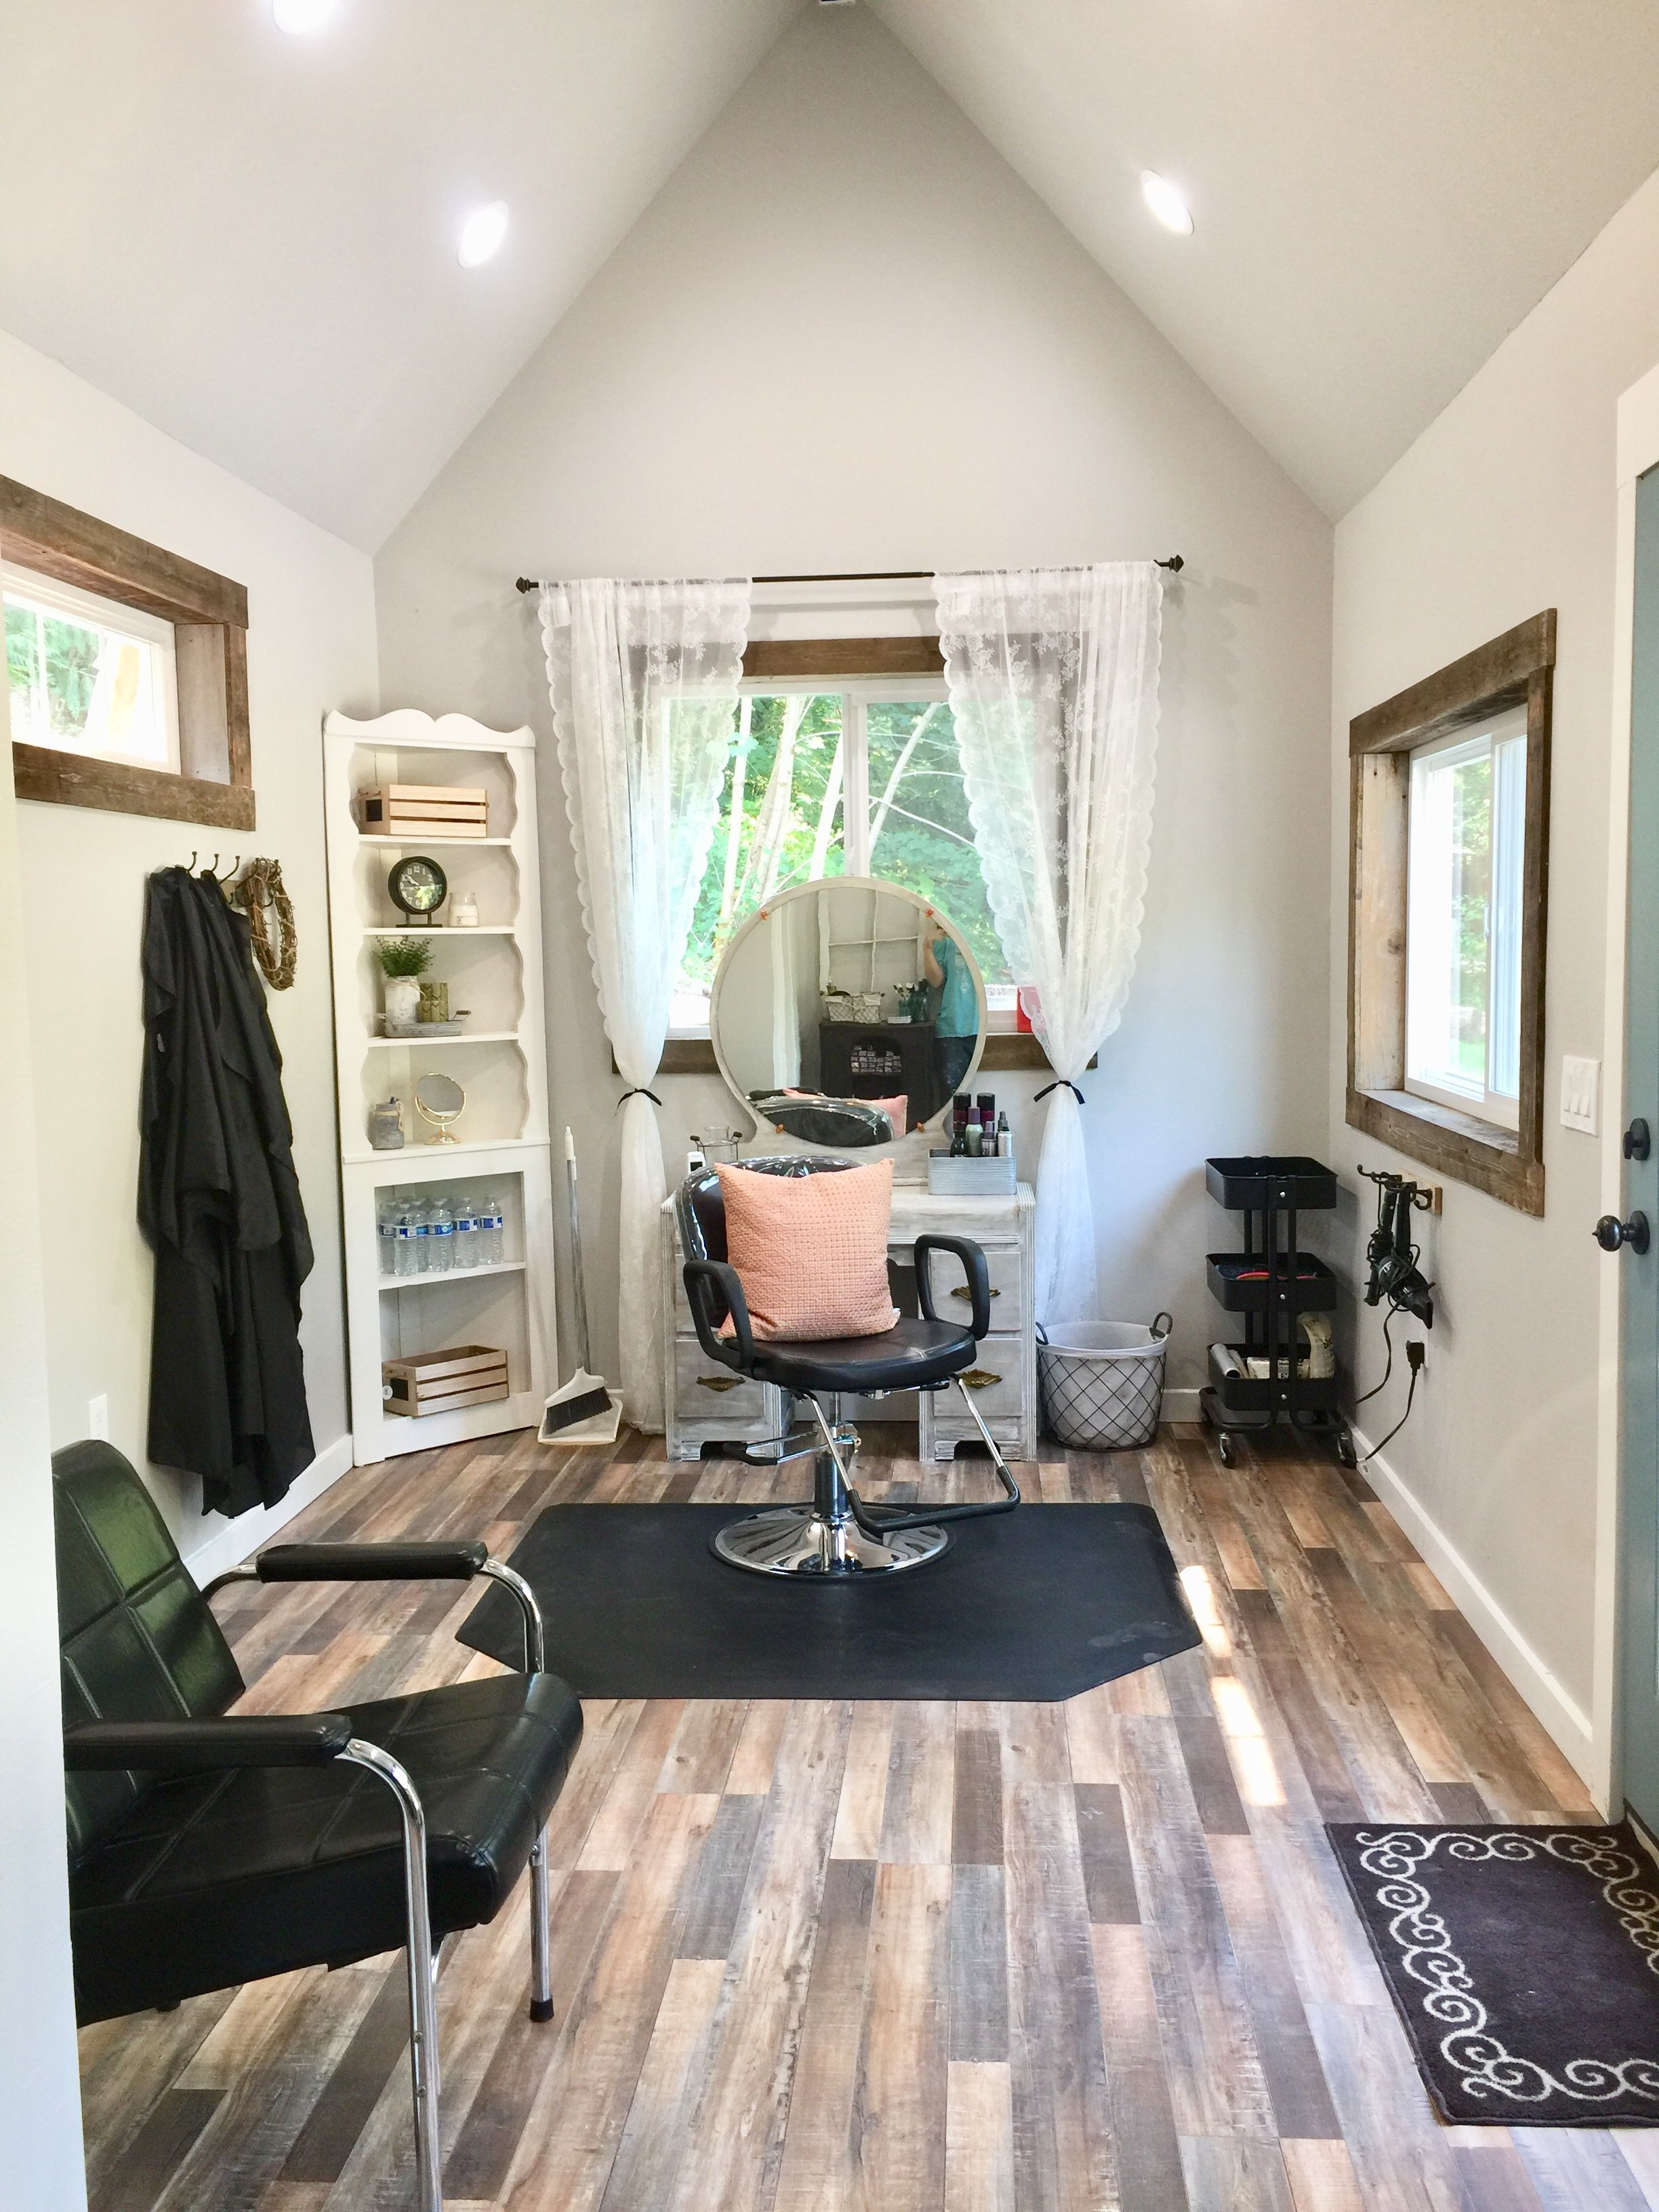 9x9 shed made into a salon. Farm house salon  Home hair salons